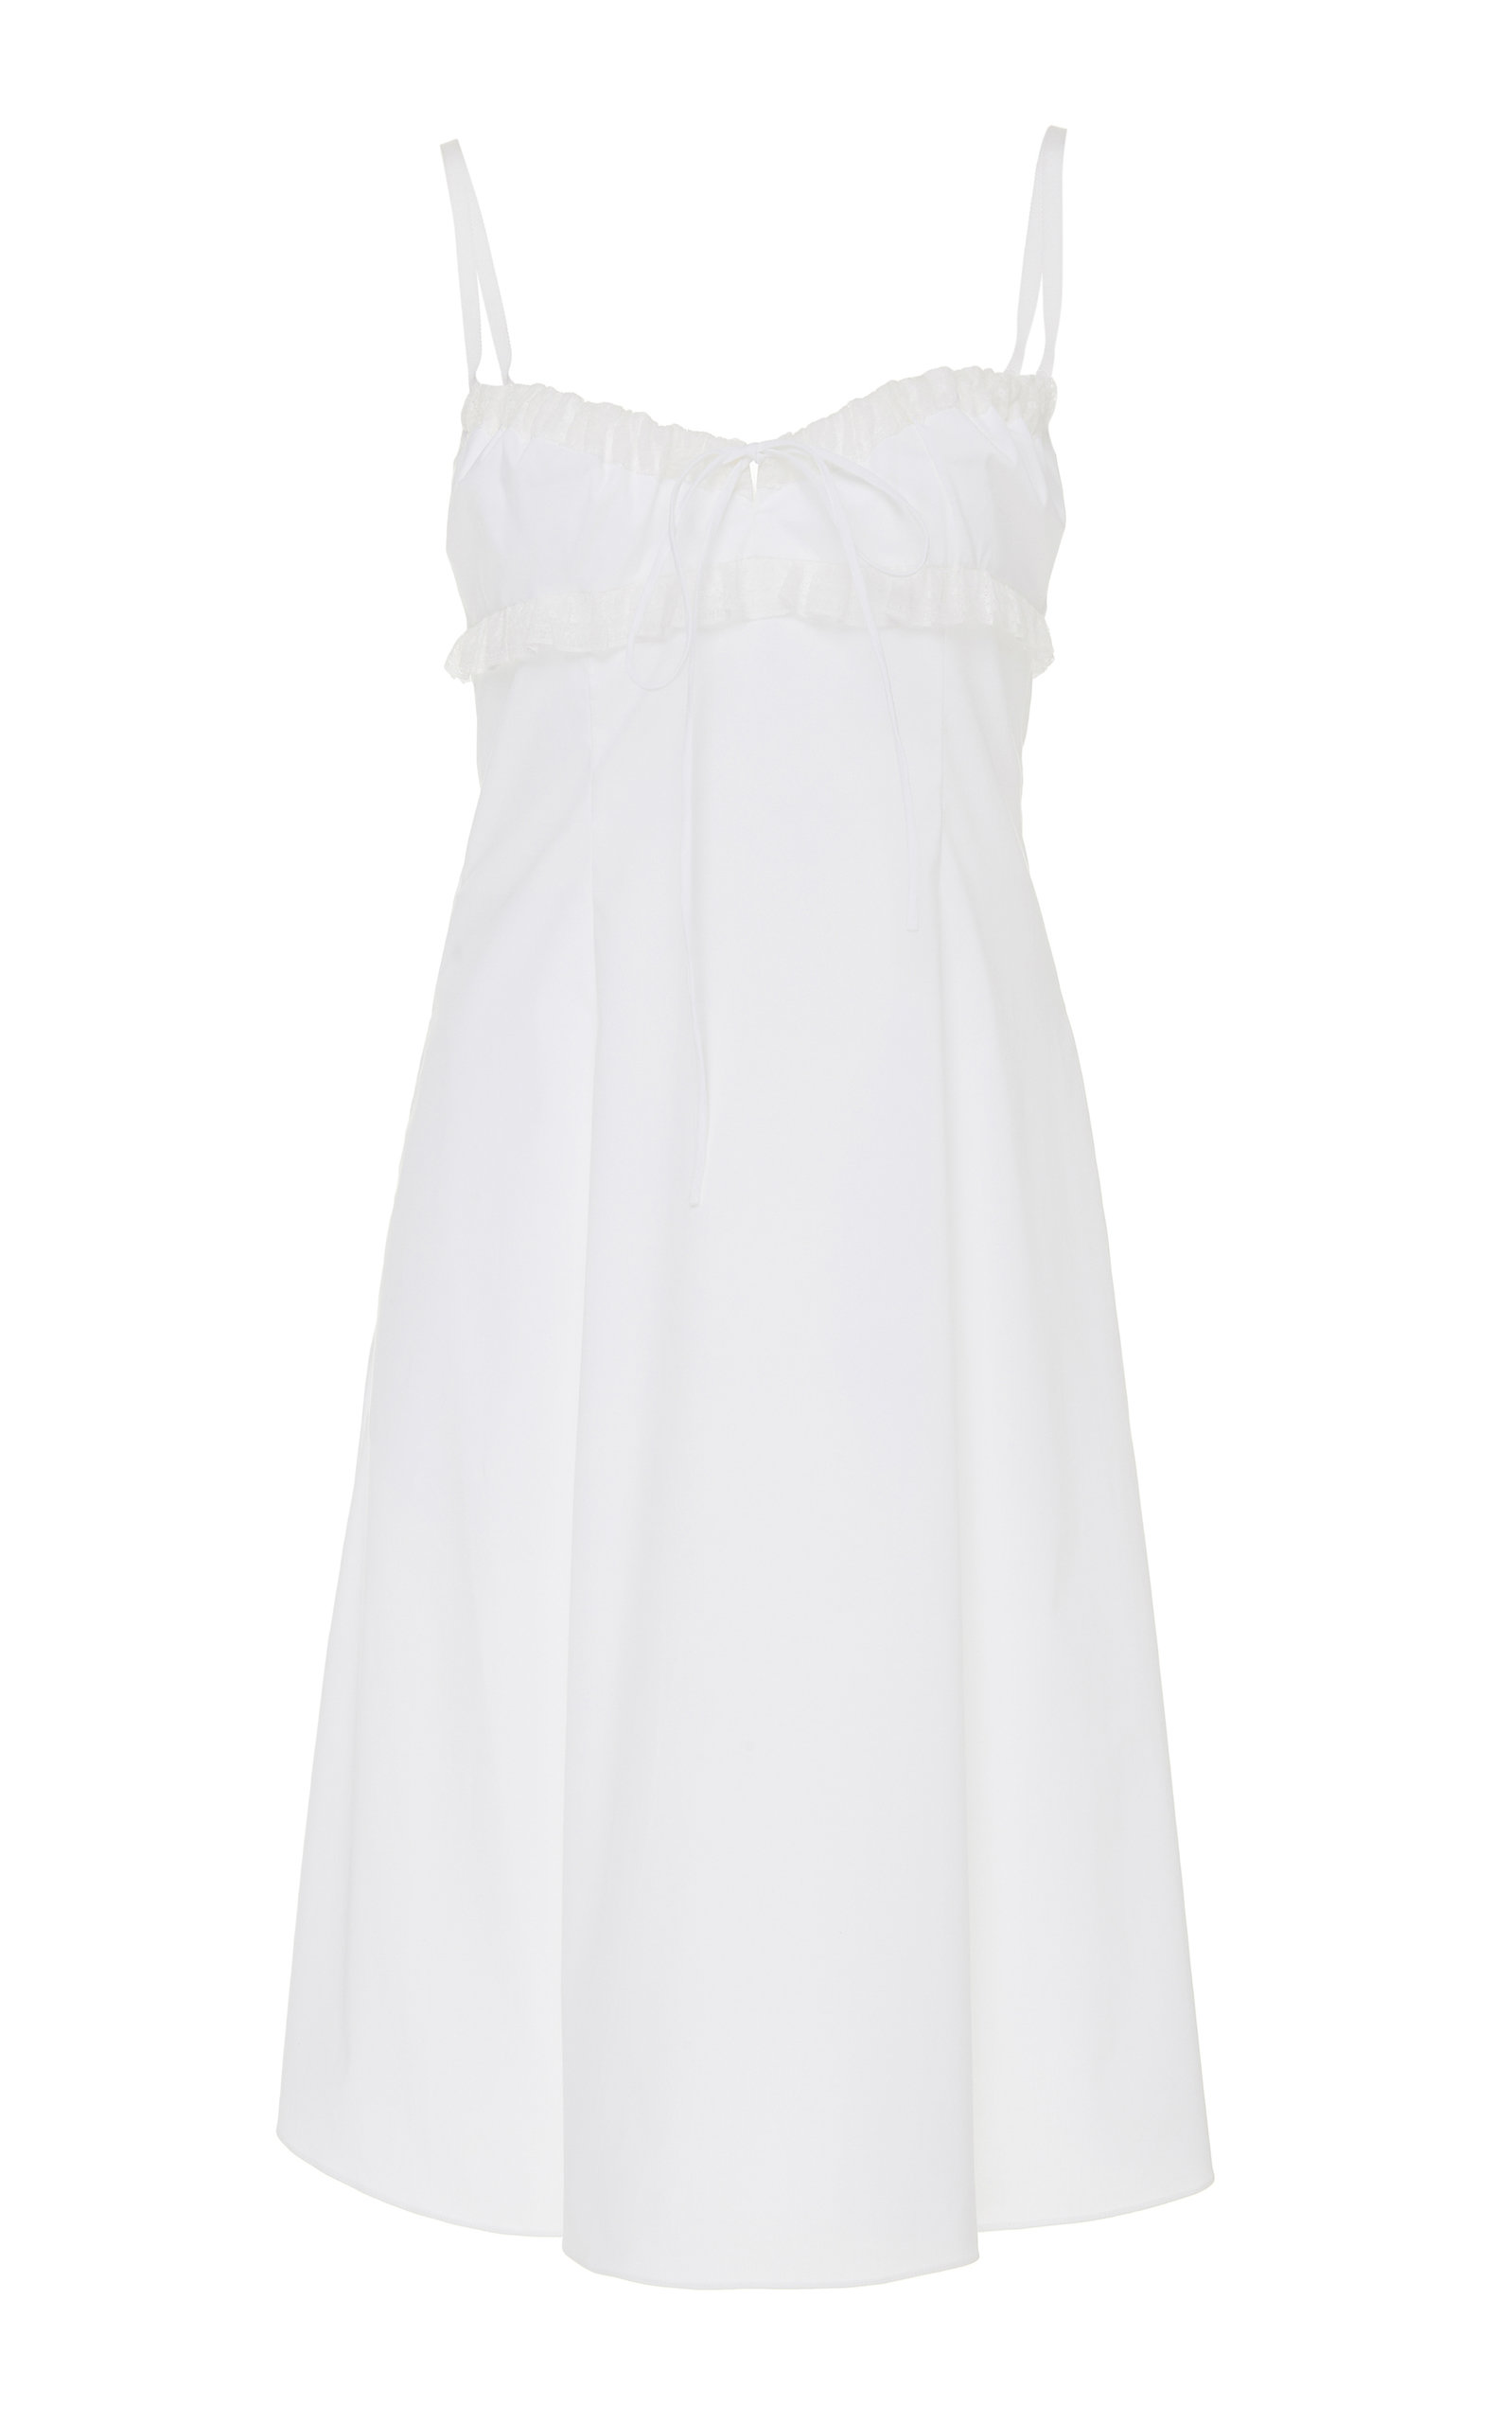 Buy Brock Collection Ruffle-Trimmed Cotton-Blend Midi Dress online, shop Brock Collection at the best price